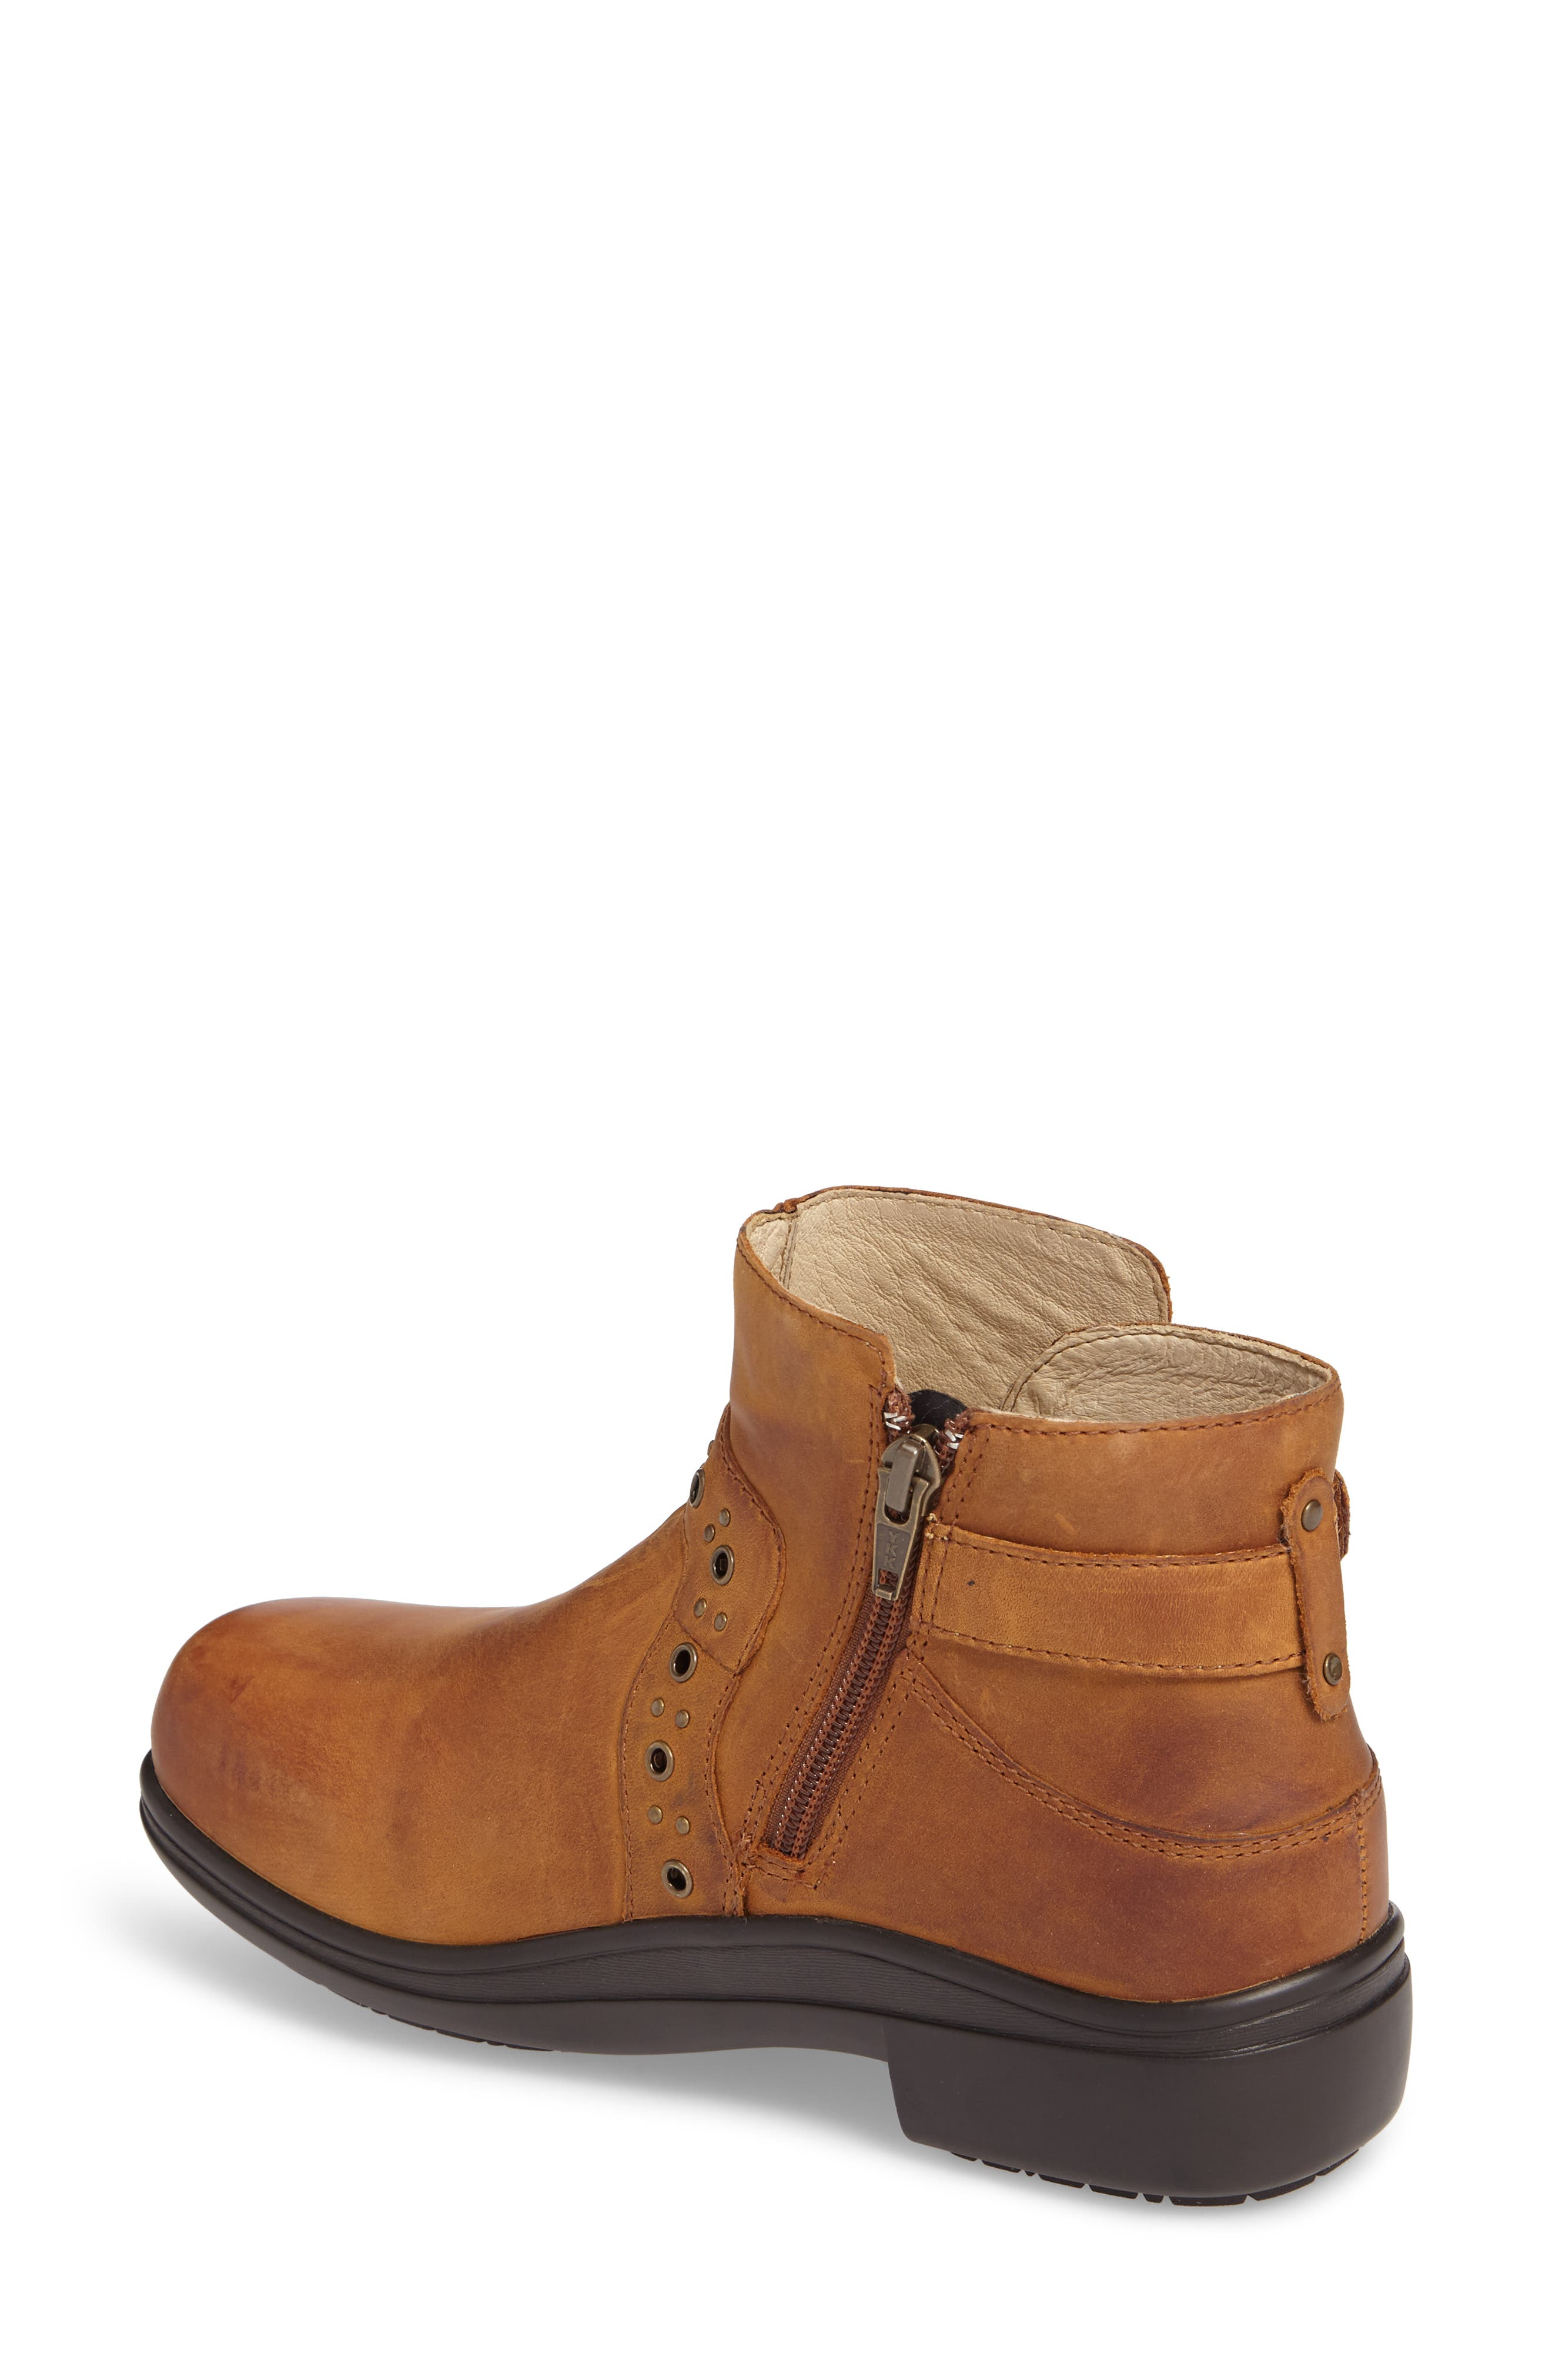 Zoey Ankle Boot,                             Alternate thumbnail 2, color,                             Walnut Leather